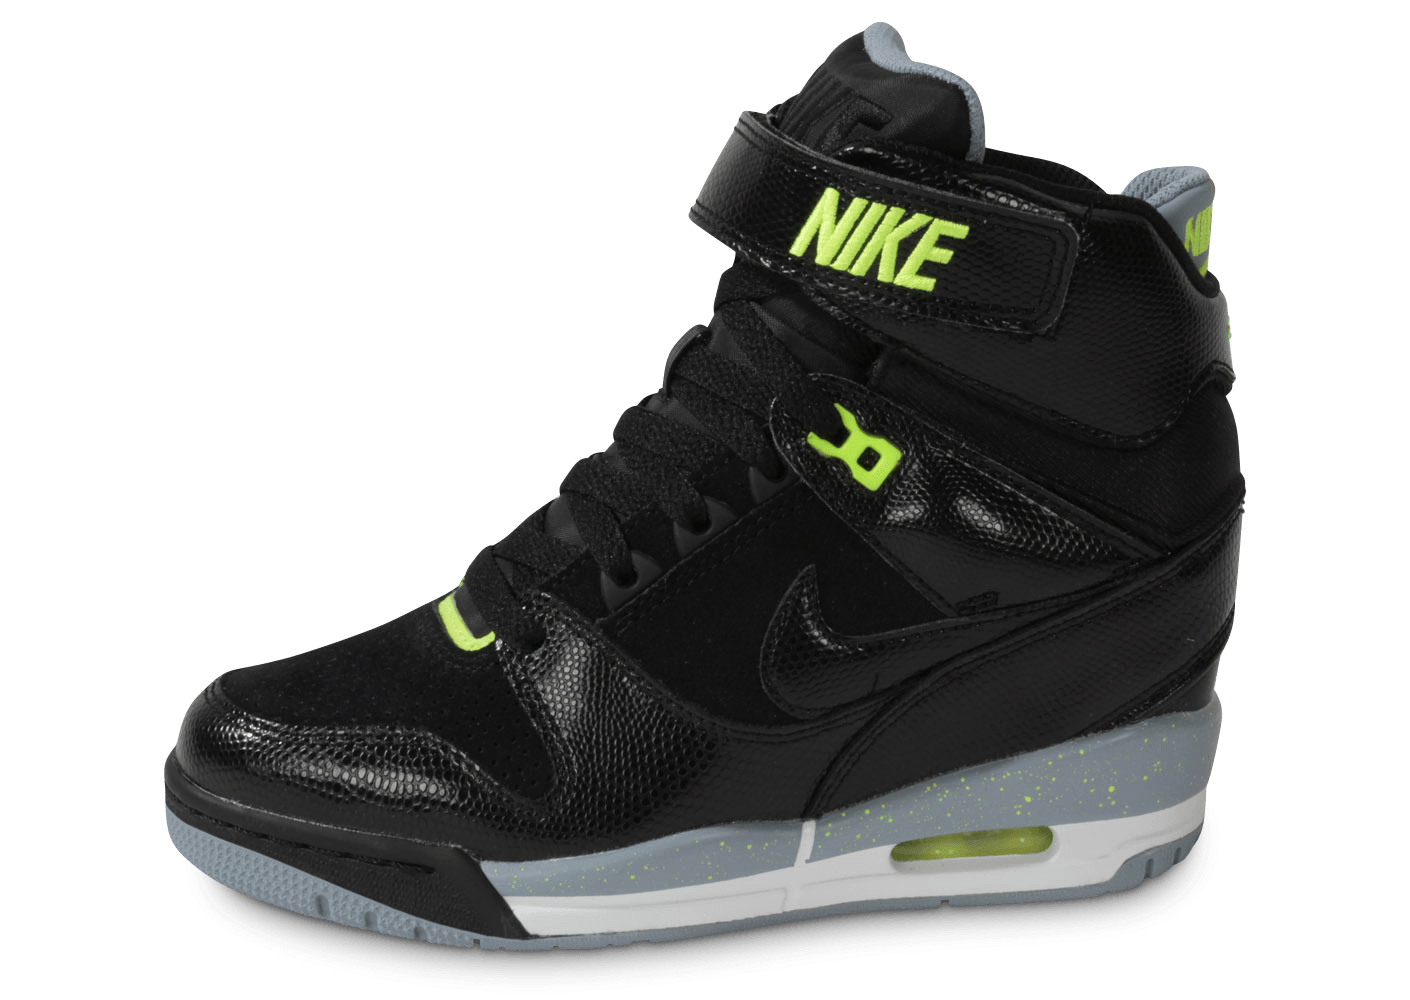 best authentic 12564 a1ed6 Nike Air Revolution Sky Hi Noire - Chaussures Chaussures - Chausport